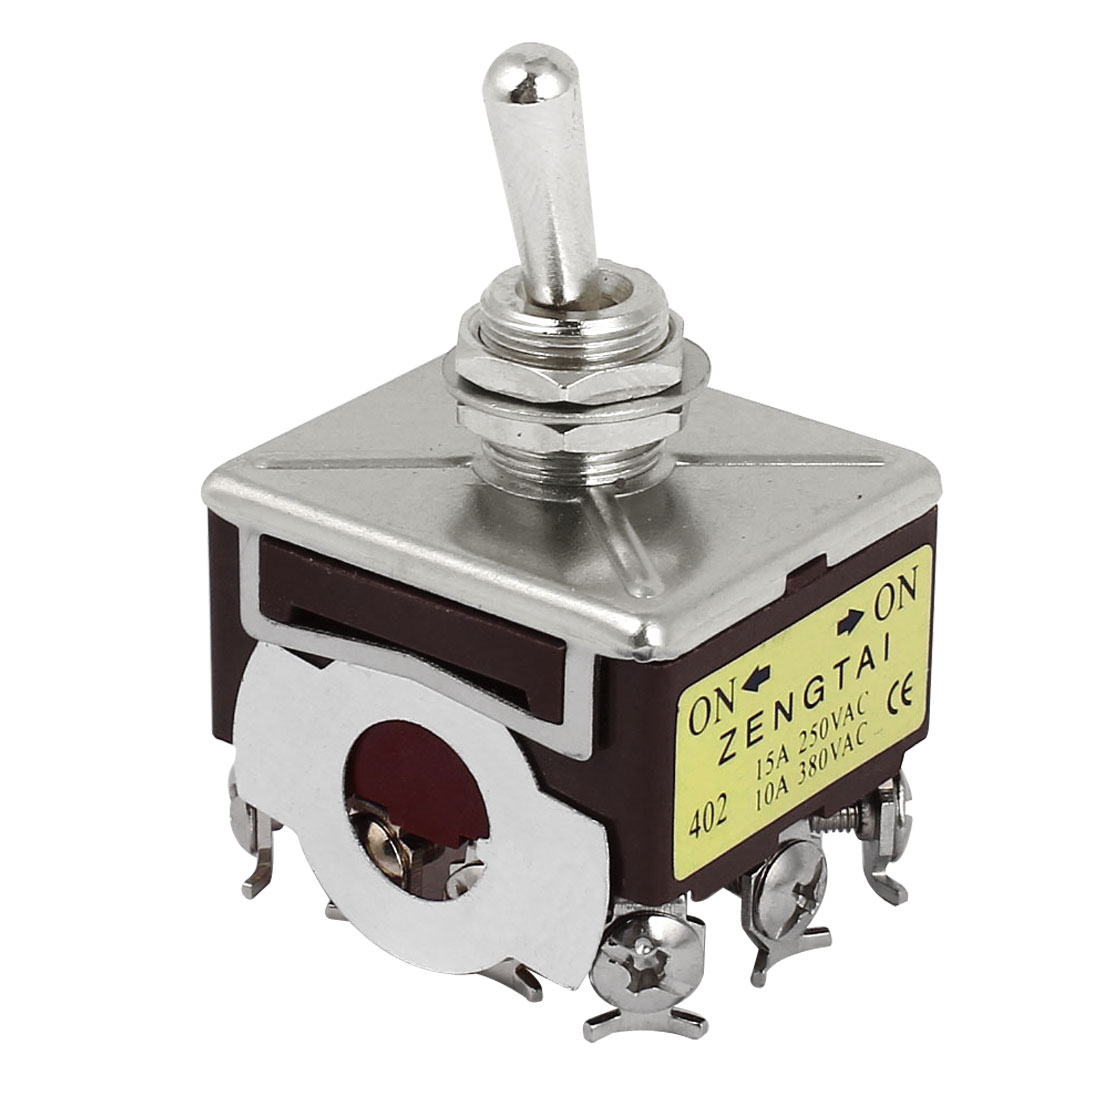 AC 250-380V 10-15A ON/OFF/ON 3-Position 4PDT 12 Screw Terminals Latching Toggle Switch